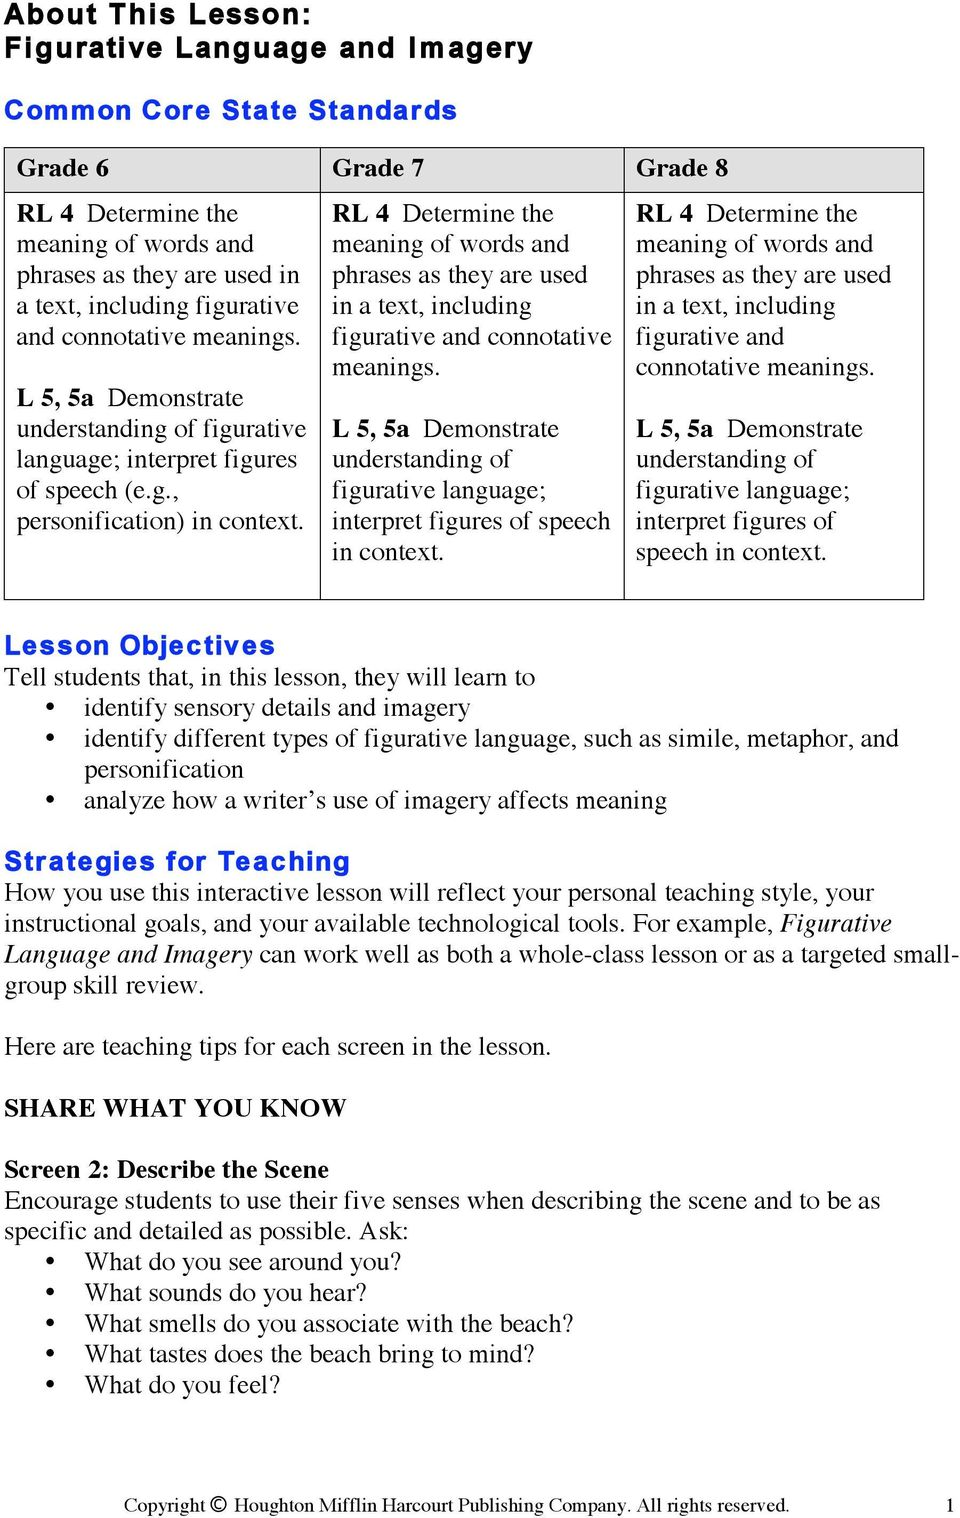 about this lesson: figurative language and imagery - pdf